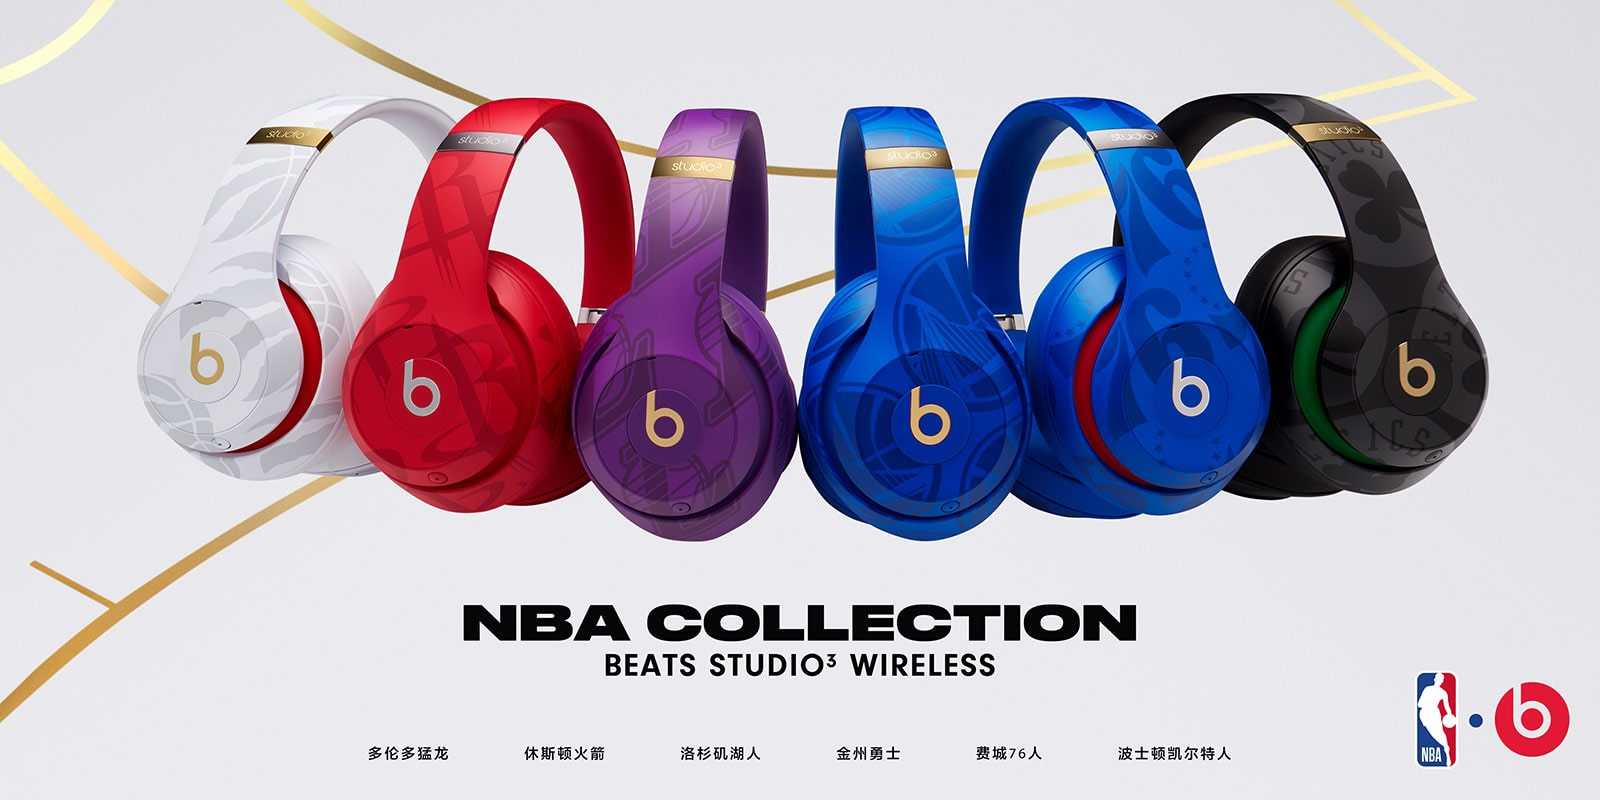 7286f82caf7 Now your Beats headphones can match your NBA fandom